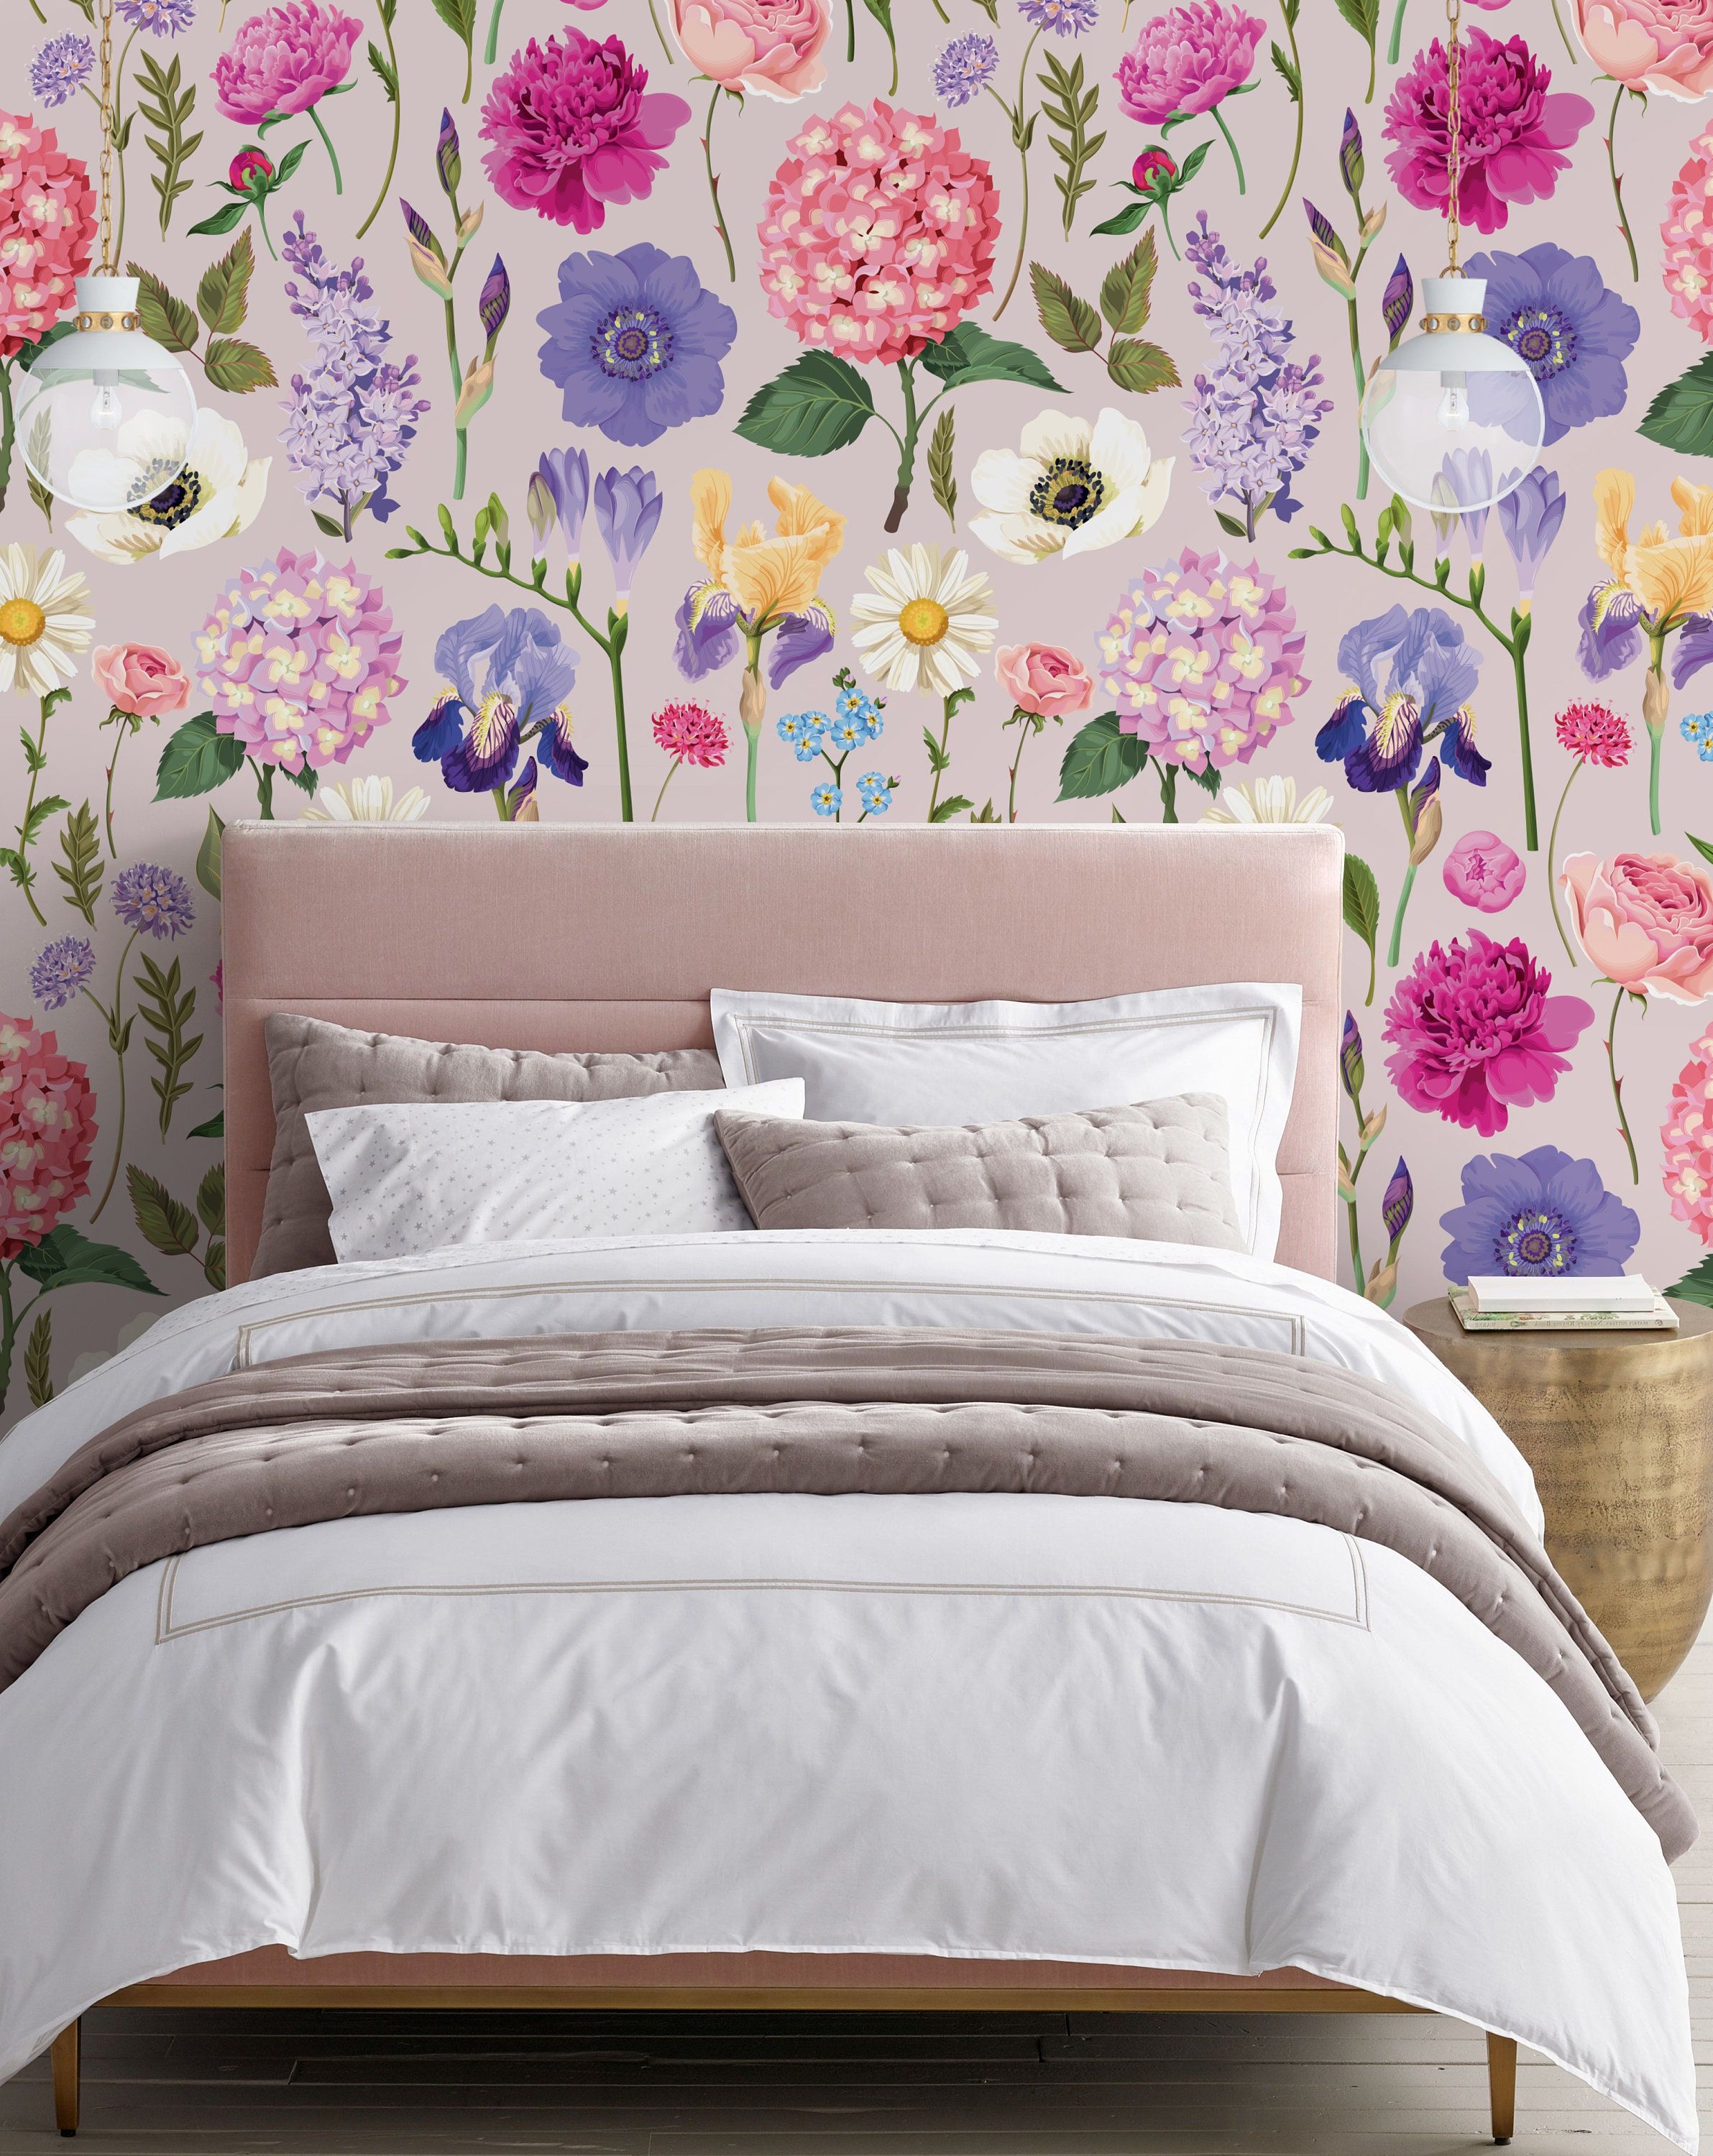 Floral Repositionable Wallpaper Peel And Stick Wallpaper Etsy